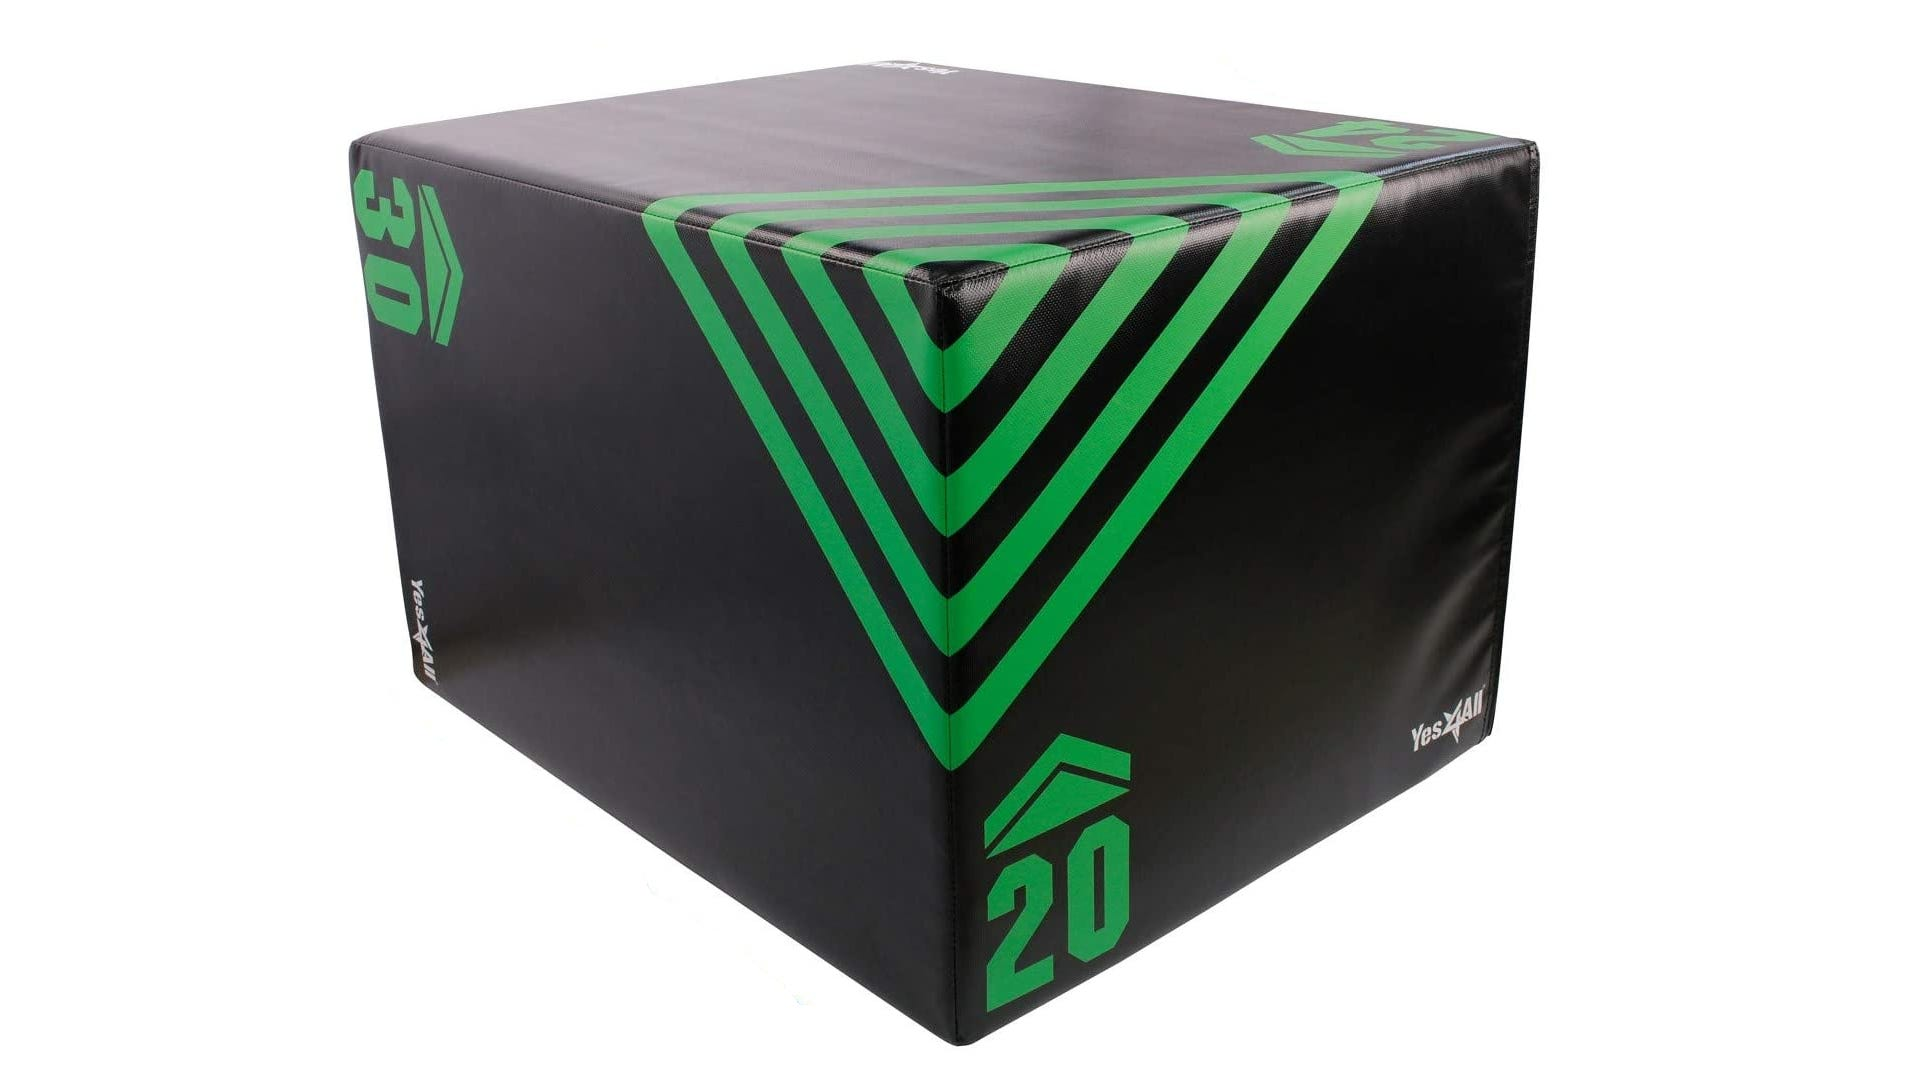 A black plyometric box with a green design and height indicators.